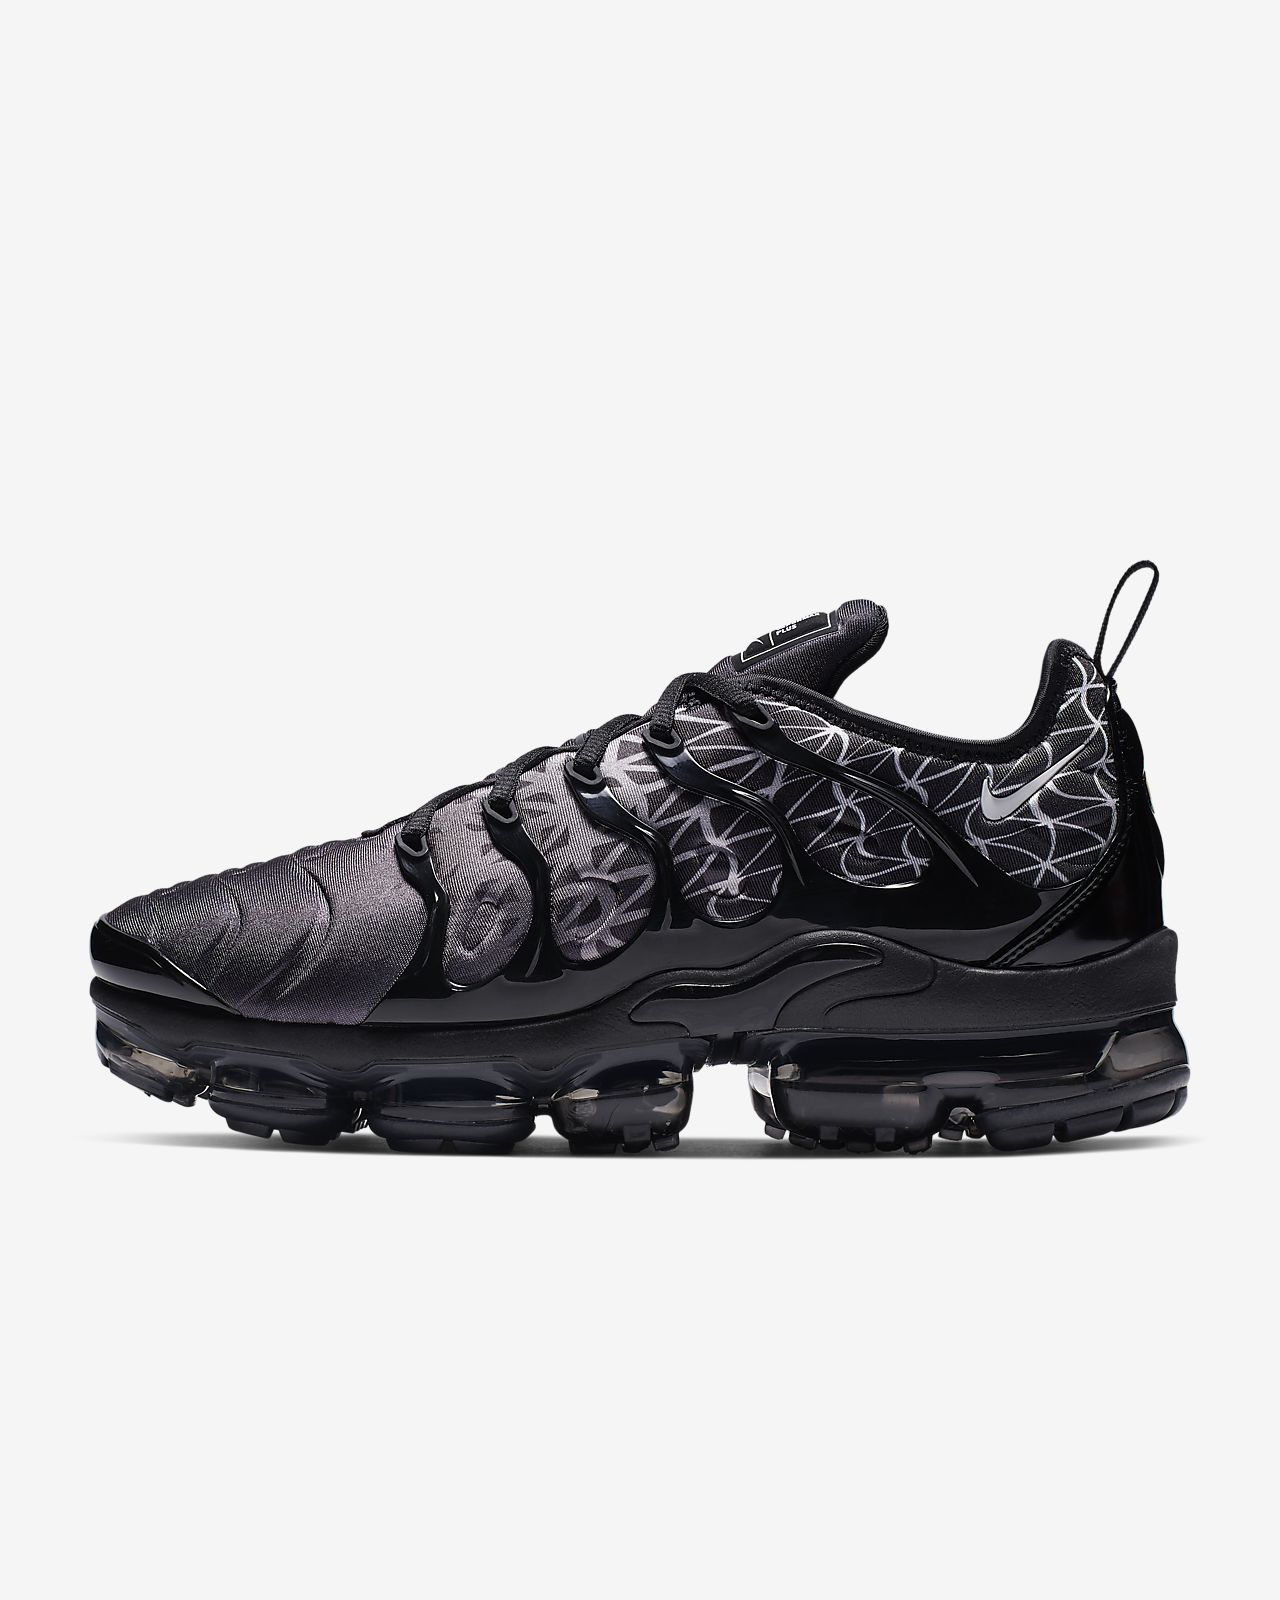 b20b09ec Мужские кроссовки Nike Air VaporMax Plus. Nike.com RU